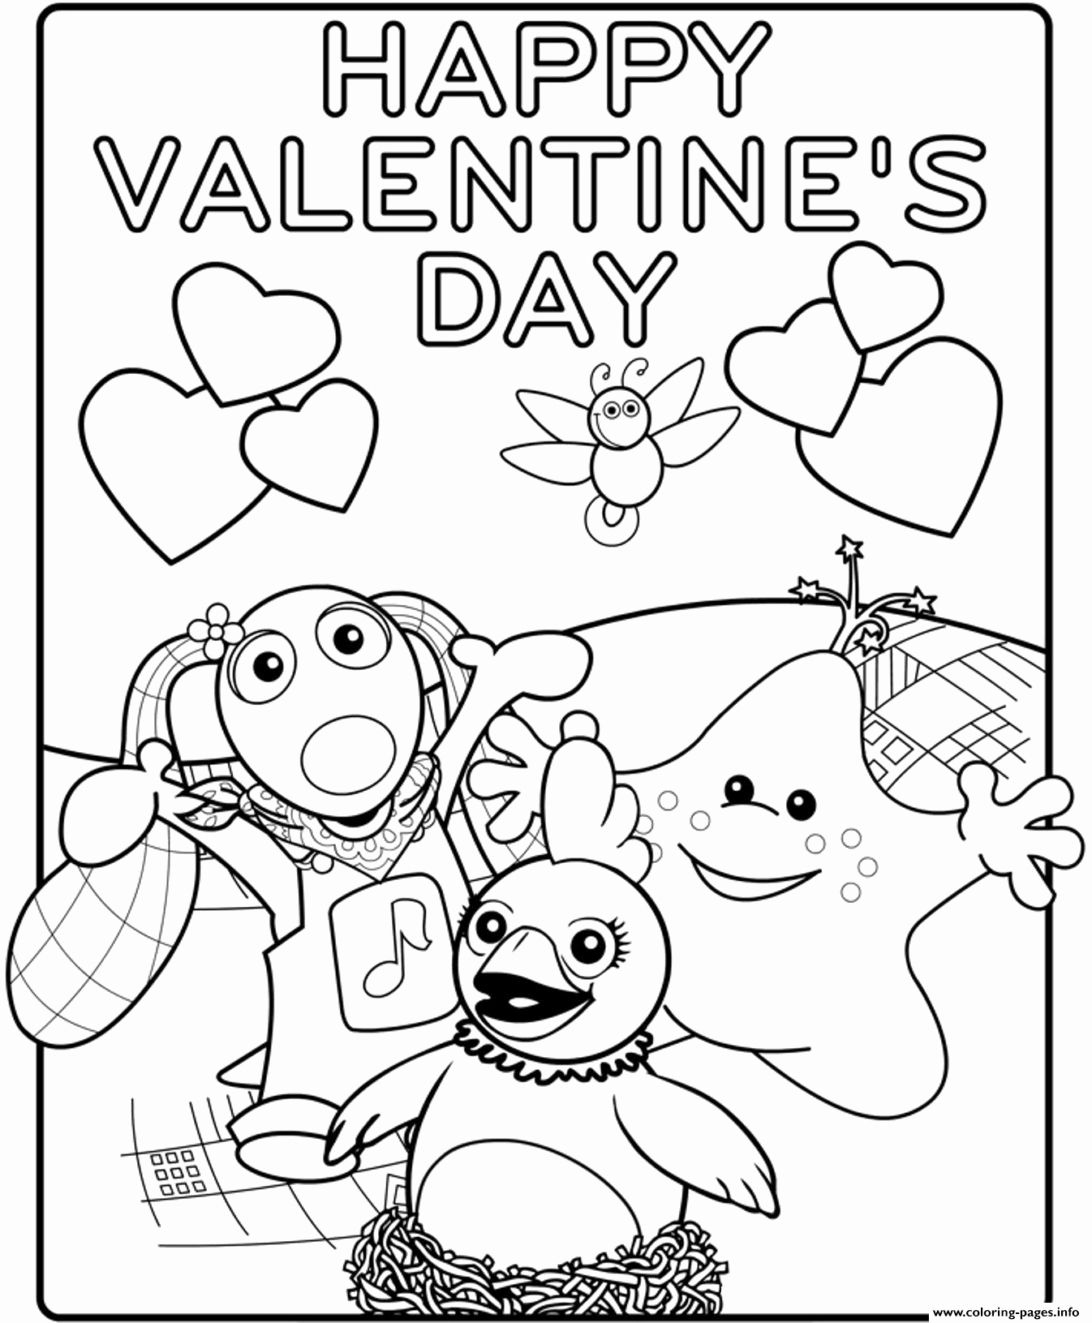 Disney Valentines Day Coloring Pages for Kids in 2020